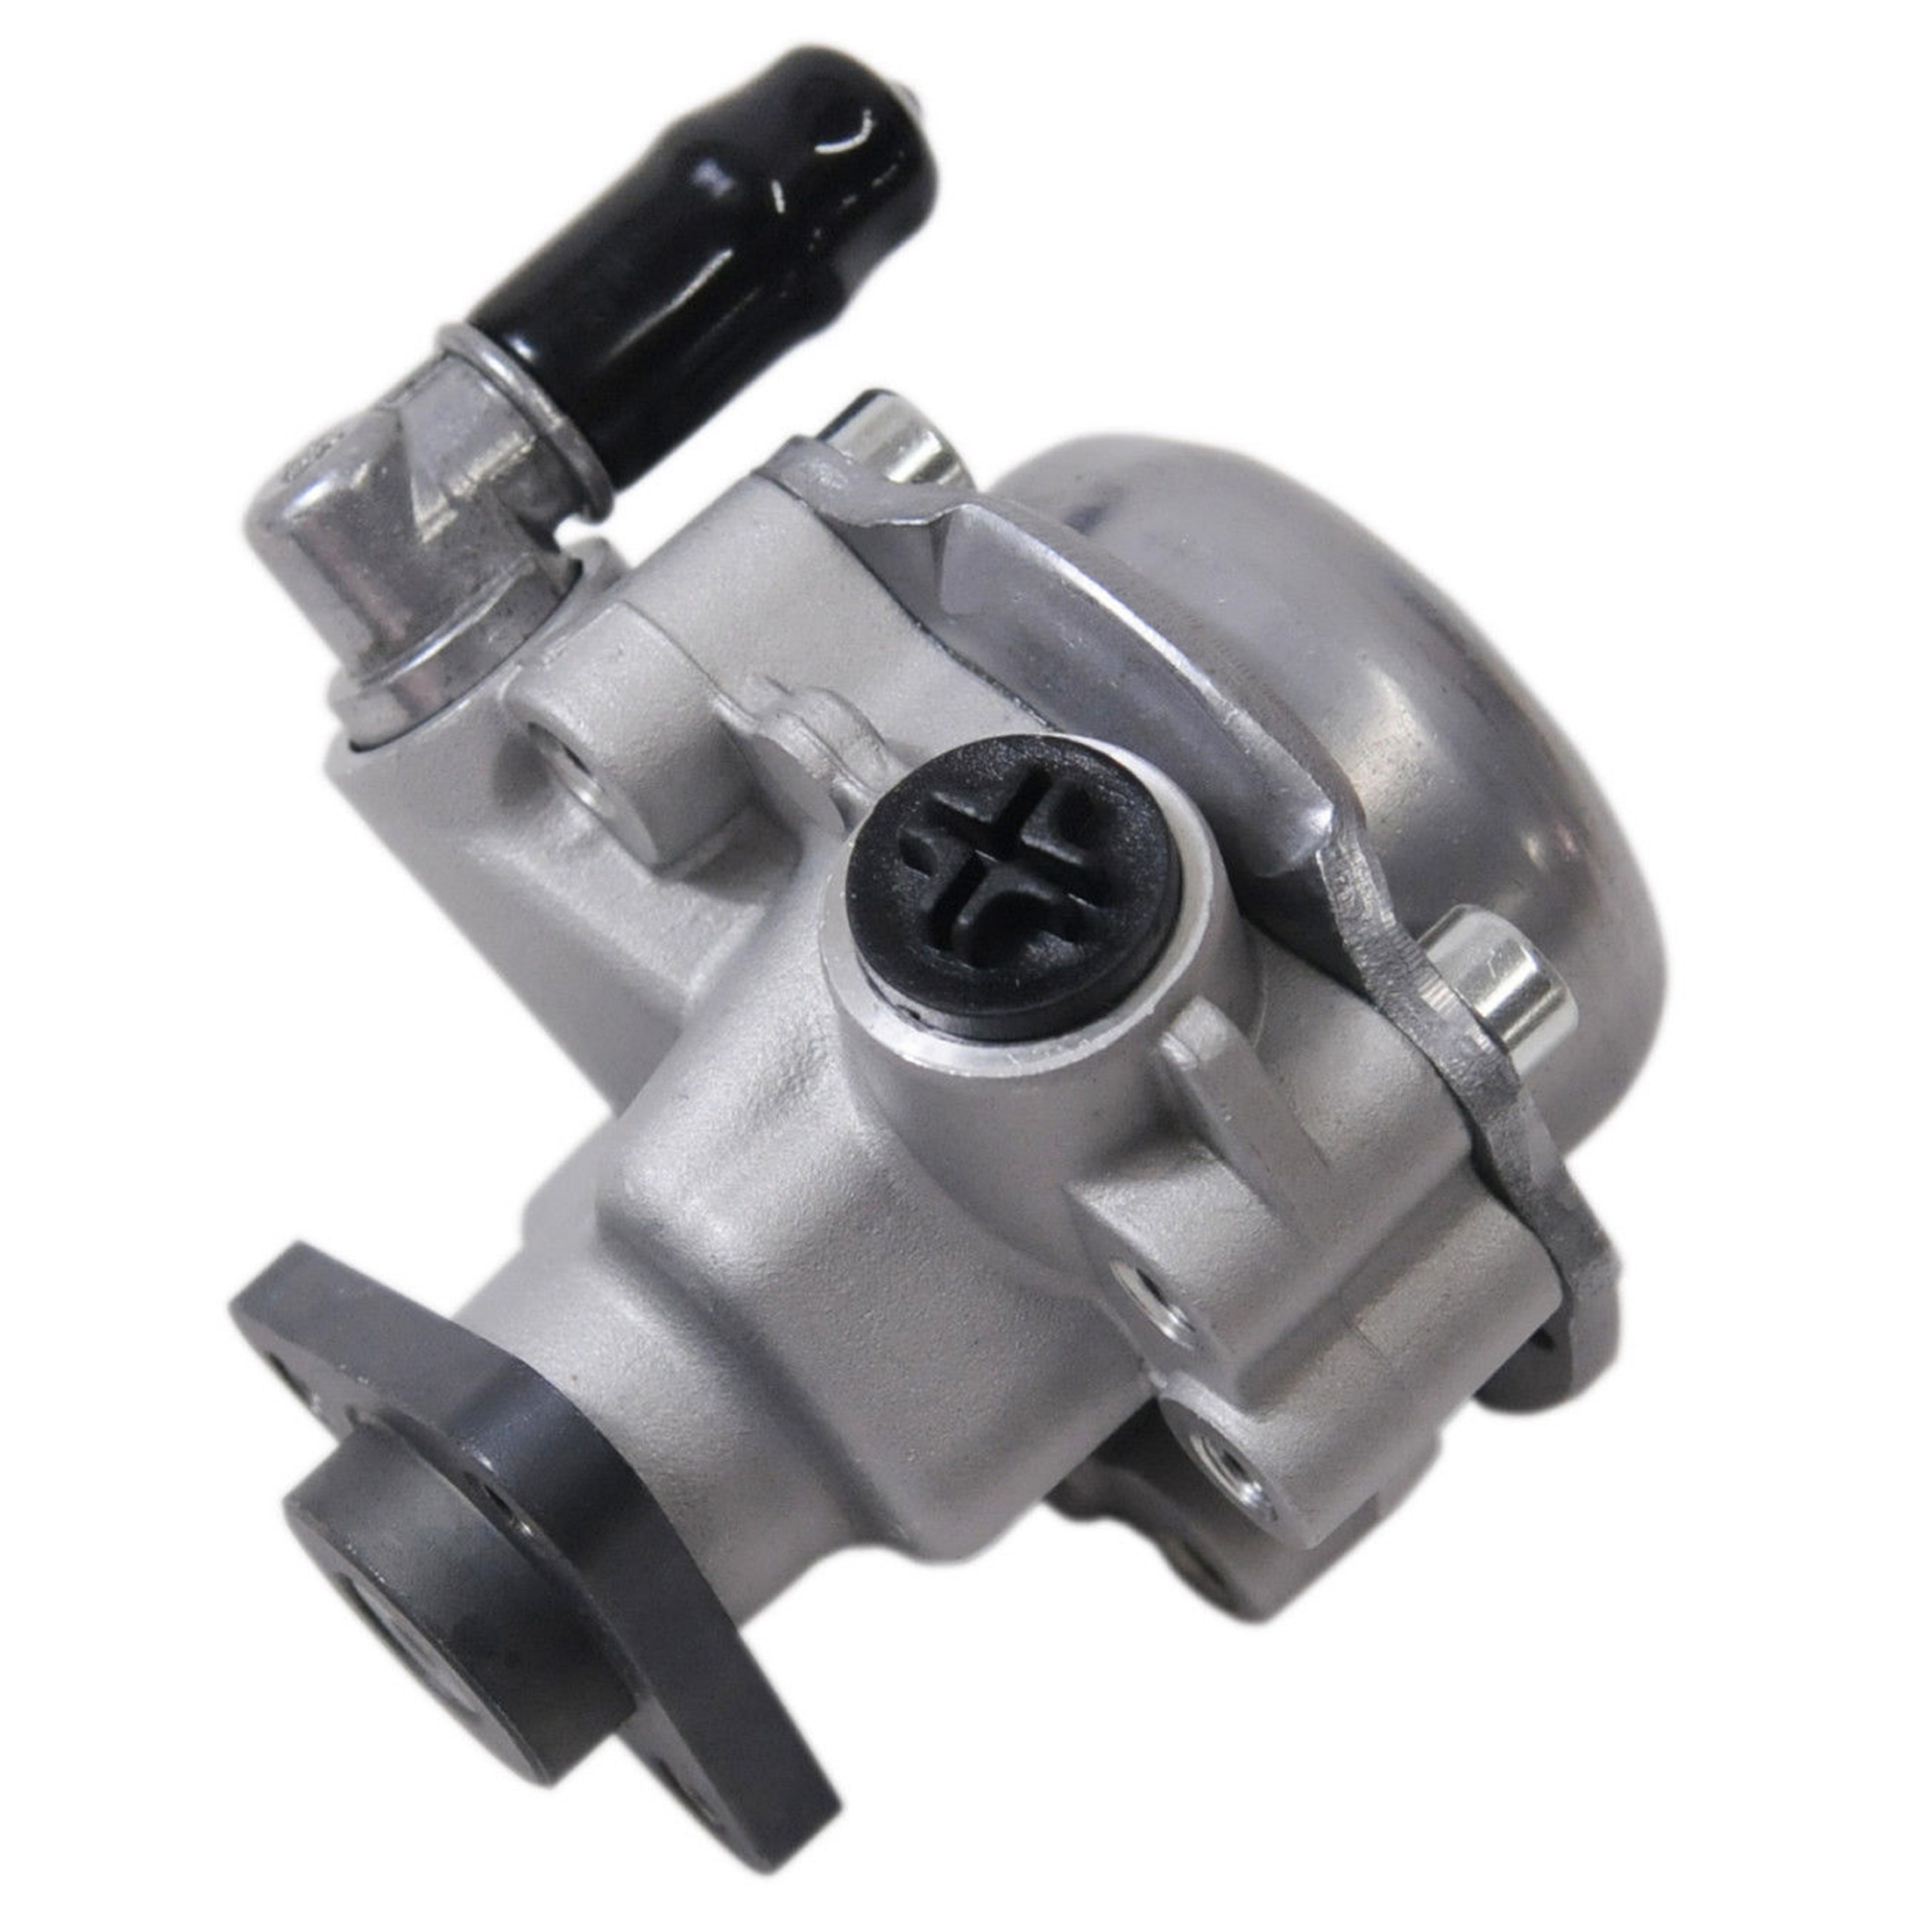 small resolution of free shipping power steering pump for bmw e46 323i 325i 328ci 330i oe 553 58945 553 59076 55358945 55359076 32416760036 in distributors parts from